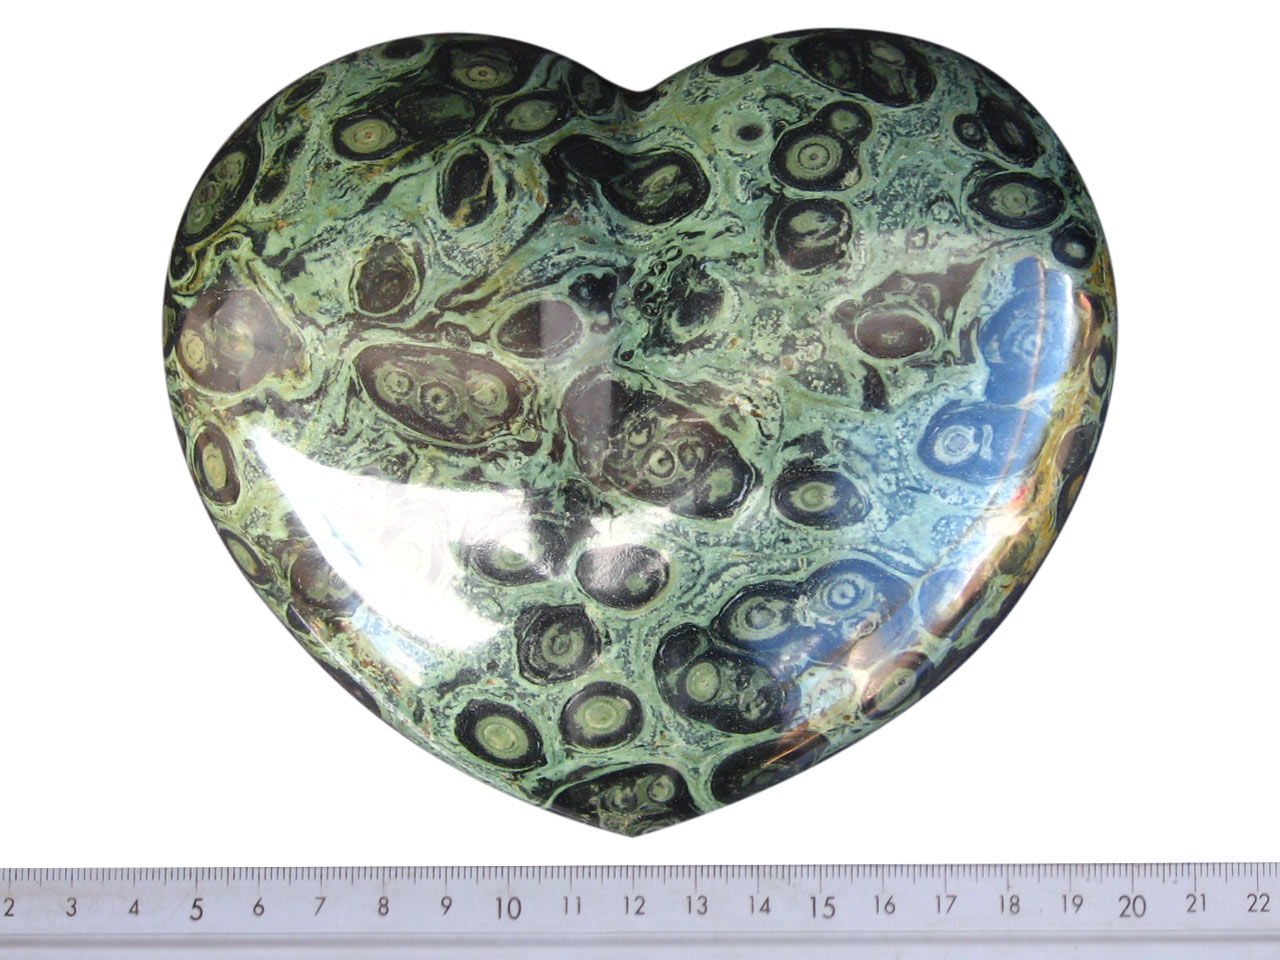 Crocodile Jasper Heart 6 inch